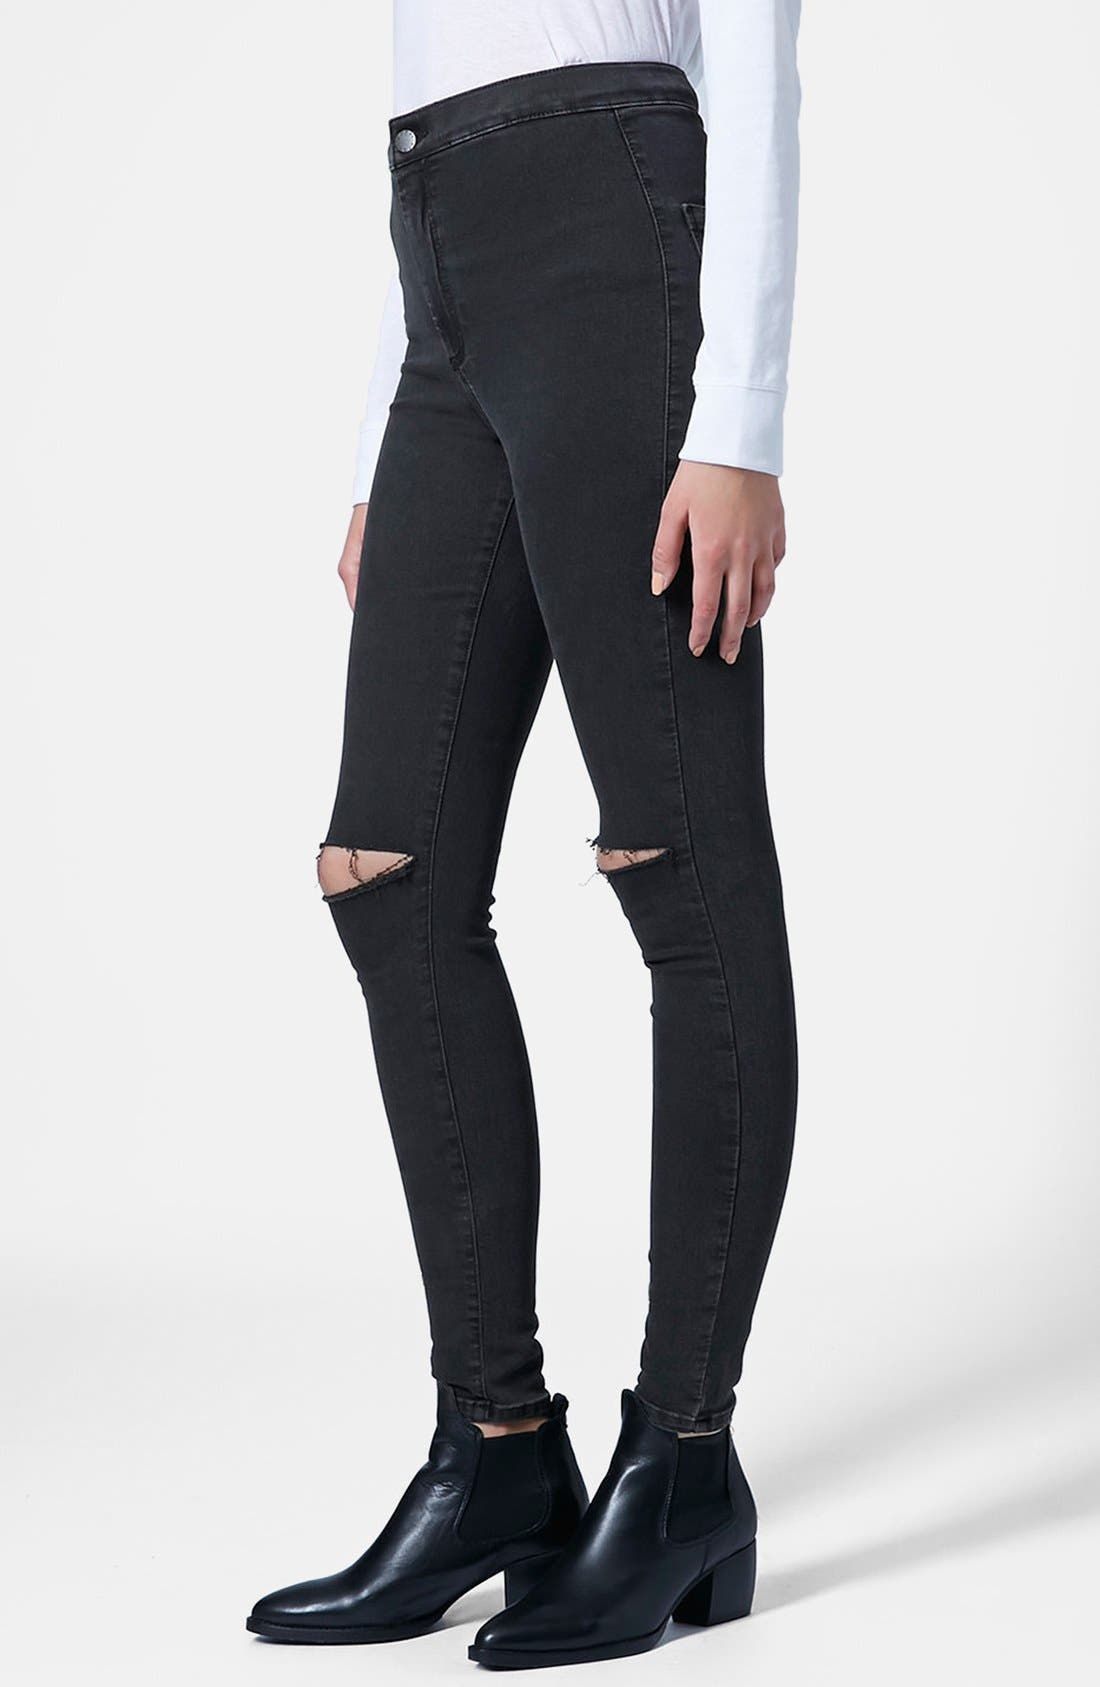 Alternate Image 1 Selected - Topshop 'Joni' Ripped Skinny Jeans (Black)